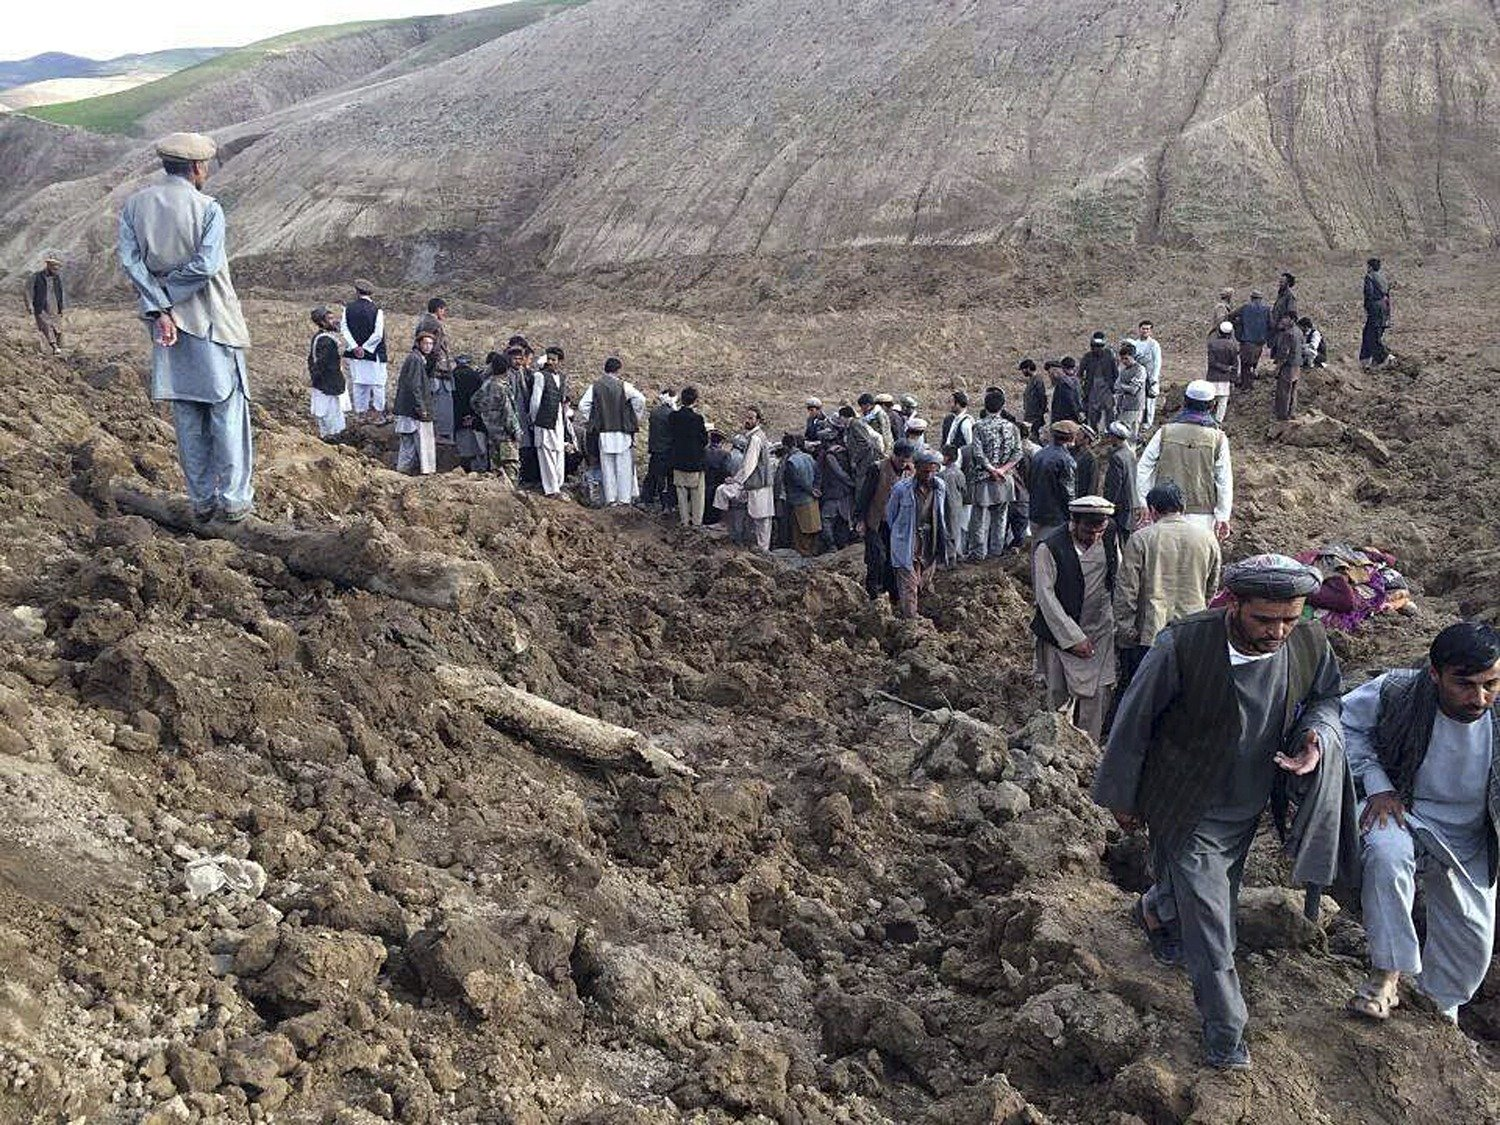 Afghan villagers gather at the site of a landslide at the Argo district in Badakhshan province, May 2, 2014.